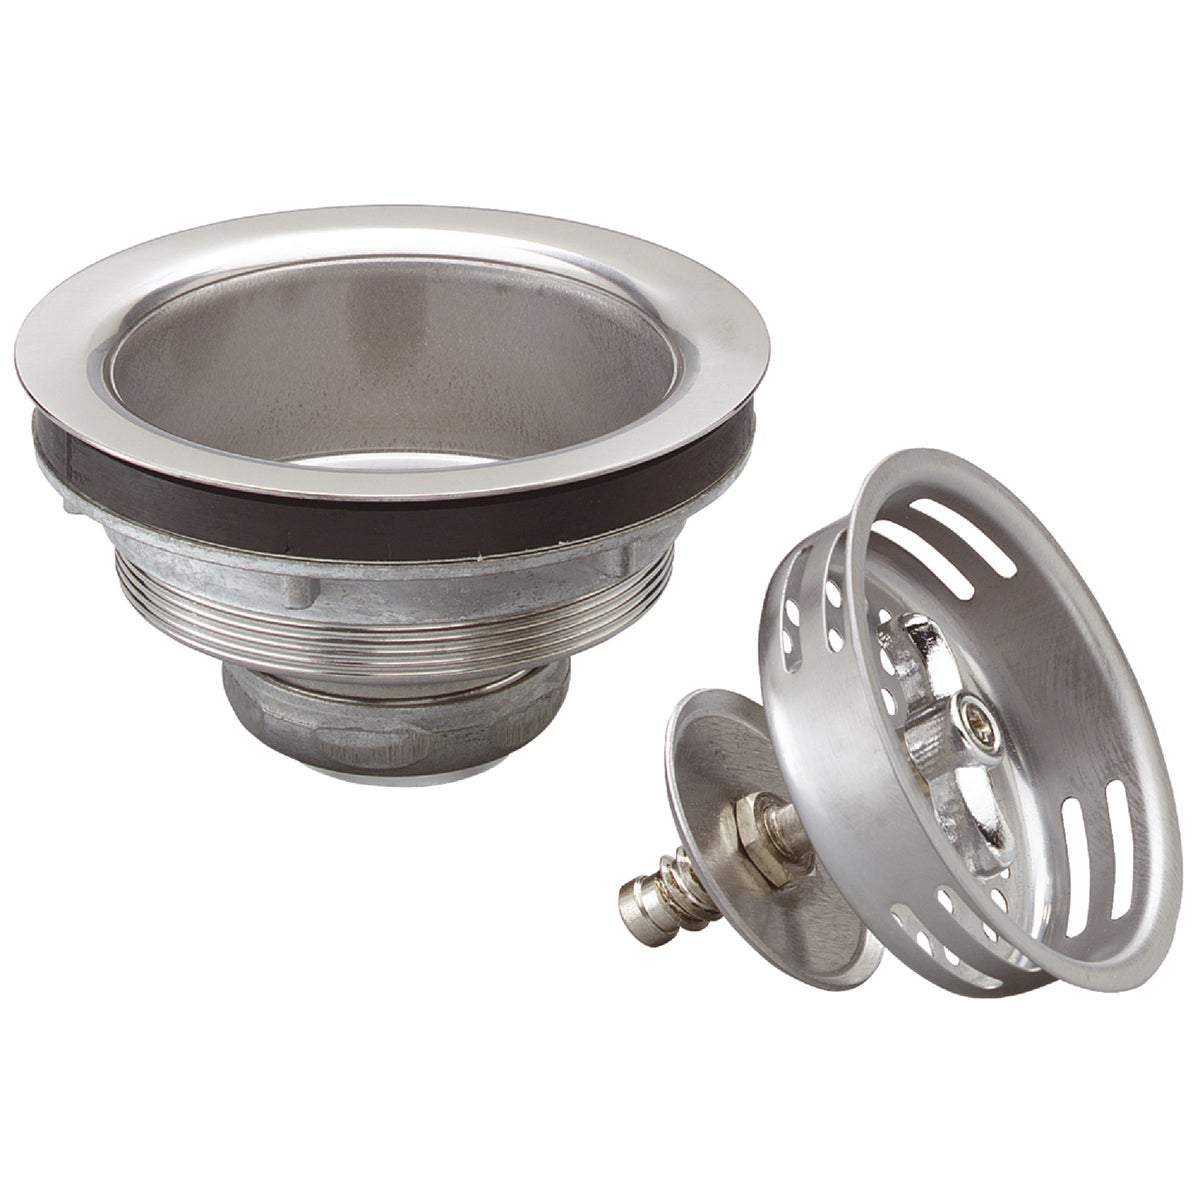 TURN2SEAL SS STRAINER - 1433SS by Plumb Pak/keeney Mfg